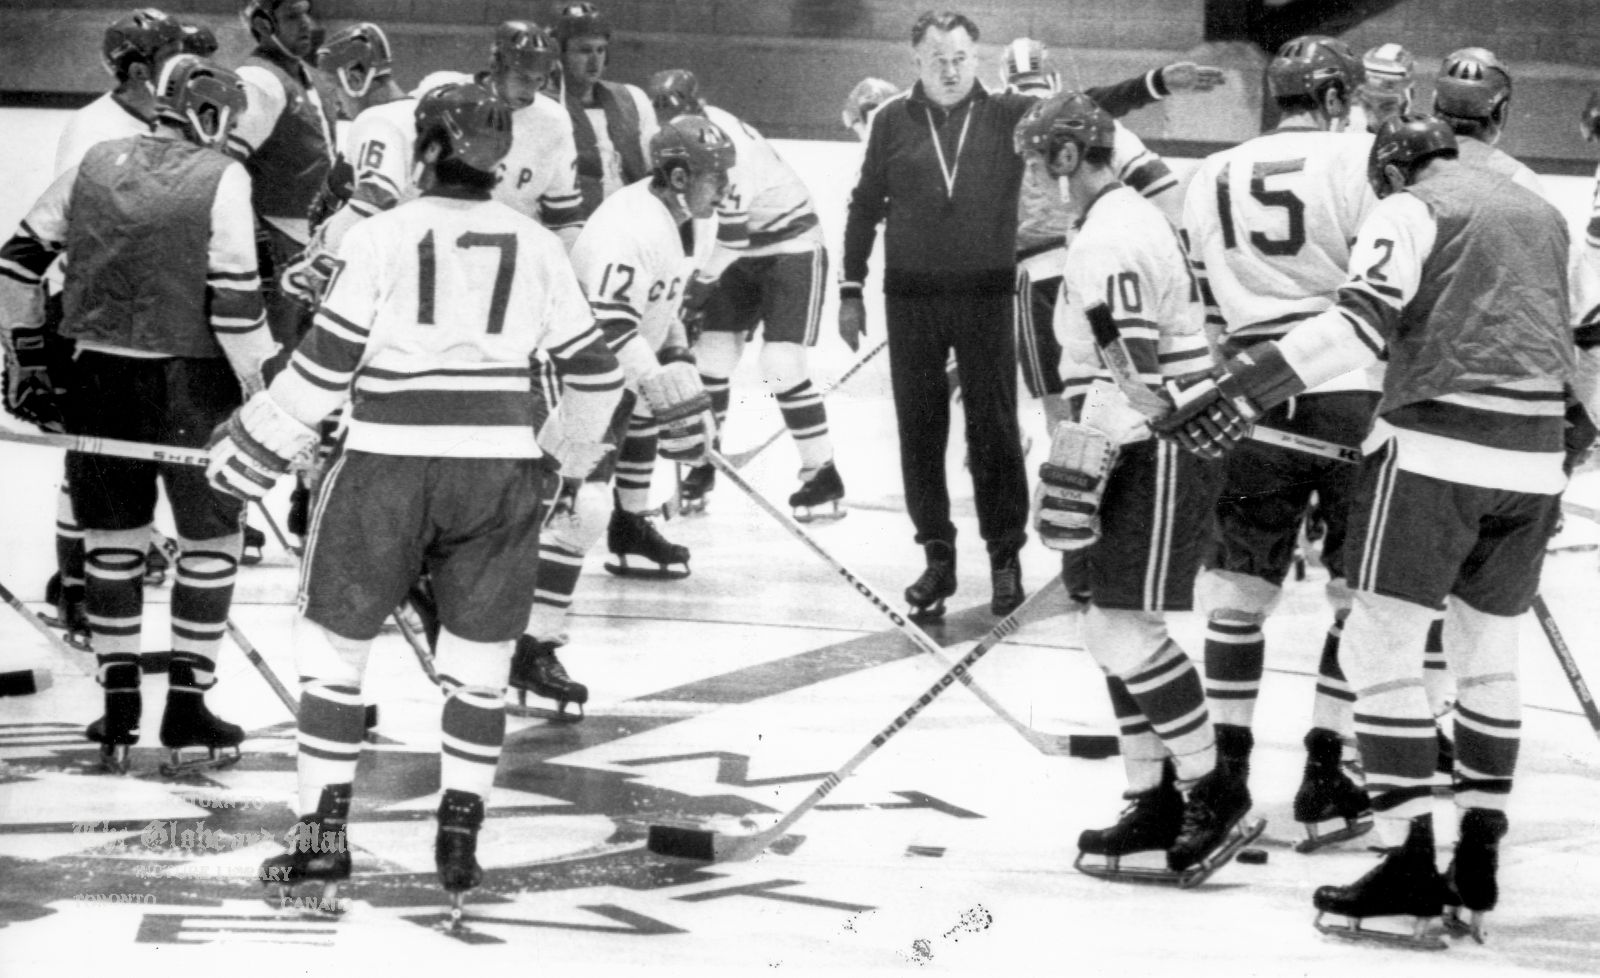 AUGUST 31, 1972 -- MONTREAL -- RUSSIAN NATIONALS PRACTICE -- Boris Kulagin, second coach of the USSR national hockey team, instructs his players during a Thursday, August 31, 1972, practice session held at St. Laurent Arena in a suburb of Montreal. The Russians are practicing for Saturday night's game which is the first of the Canada-Russia summit series. CP PHOTO Originally published Sept. 1, 1972, page A36